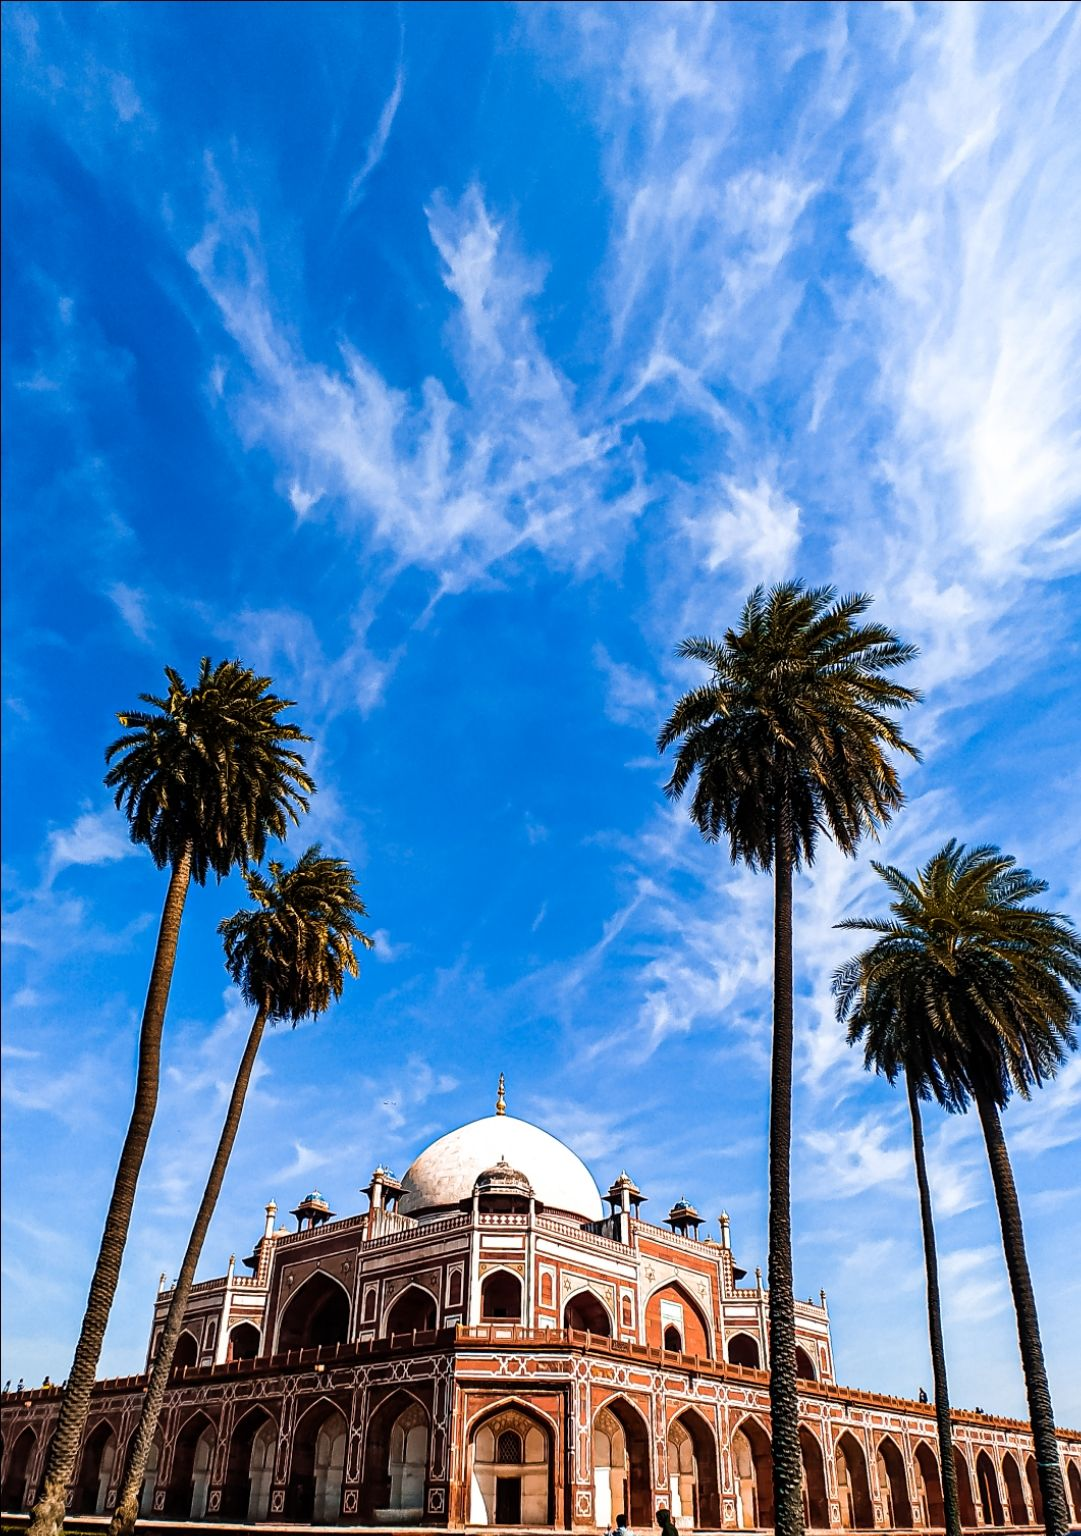 Photo of Humayun's Tomb By Joginder Chaudhary